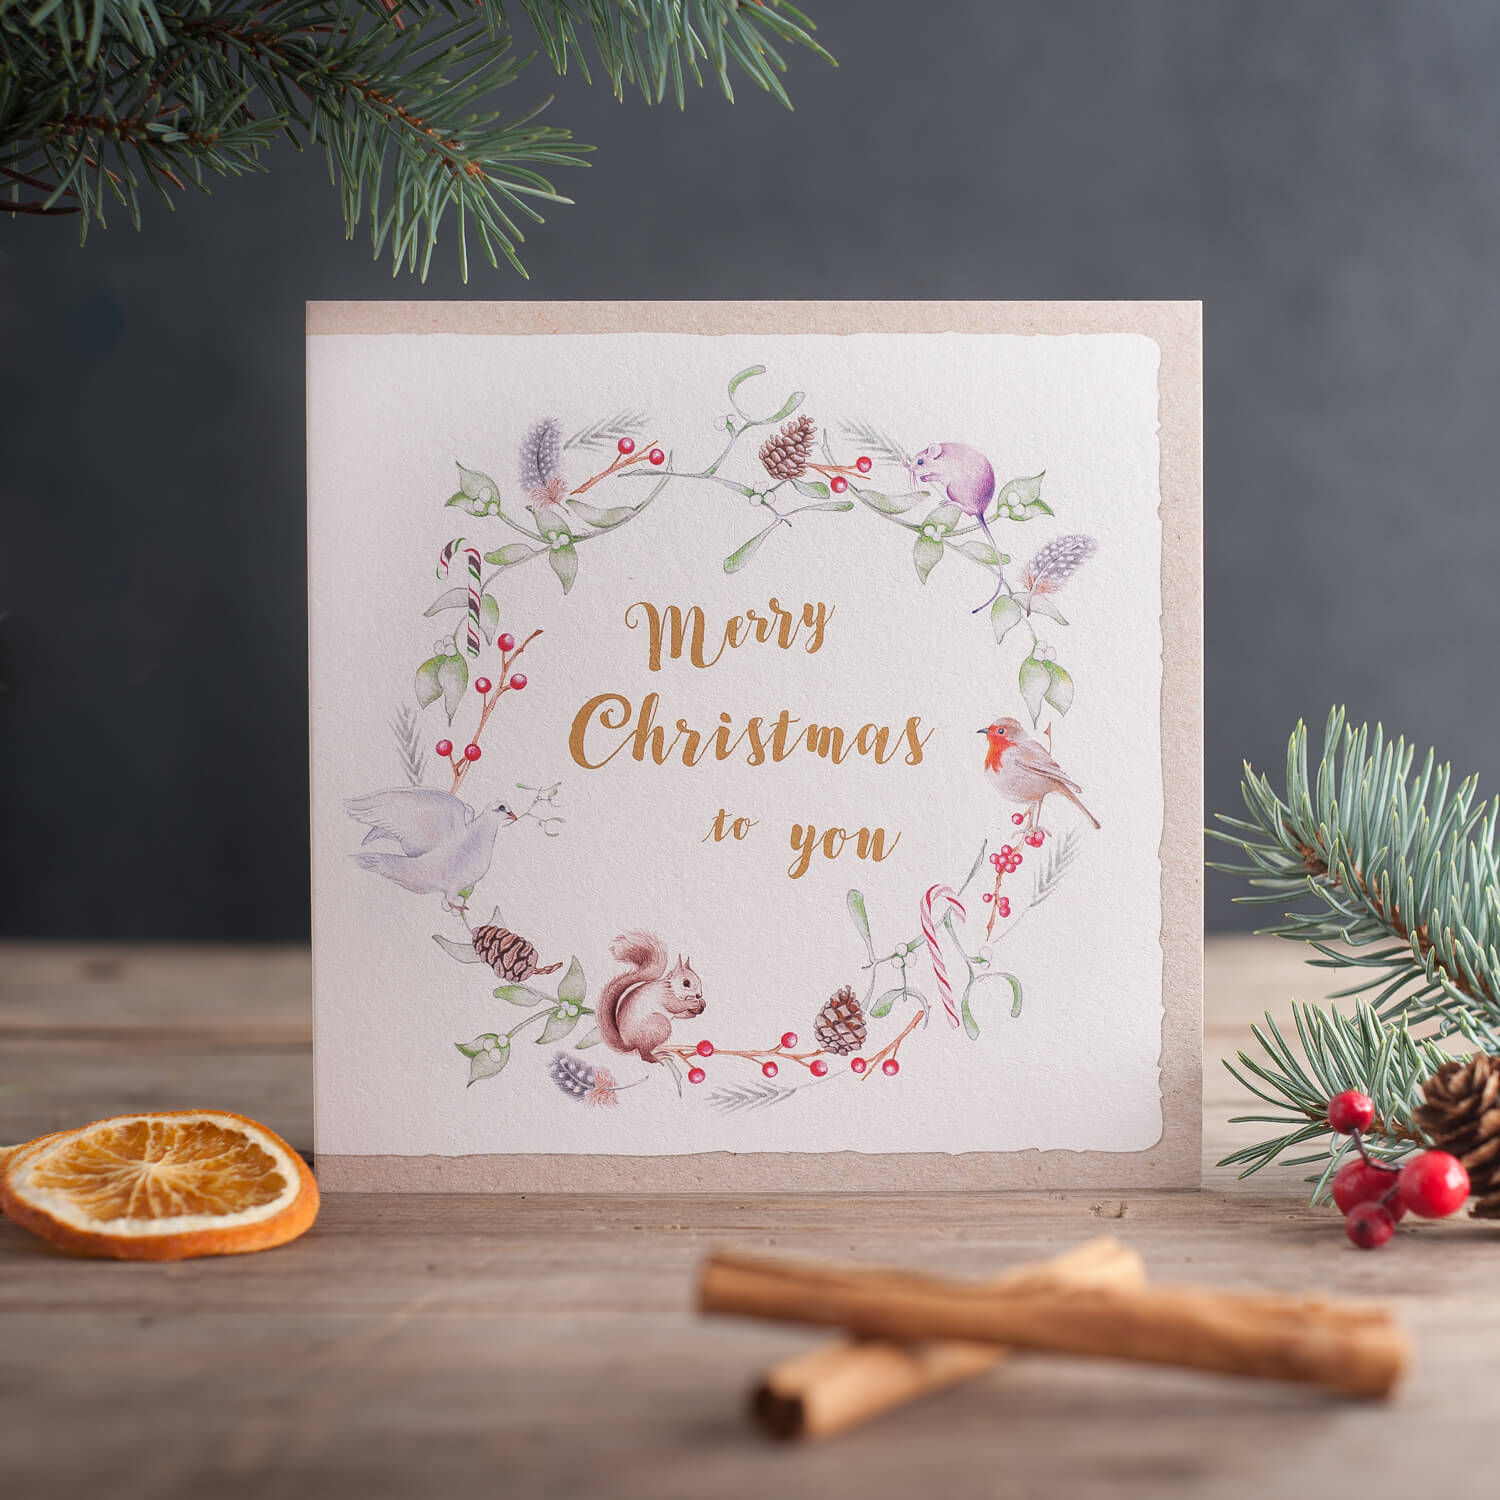 Deckled Edge greetings card designer Christmas card product photograph